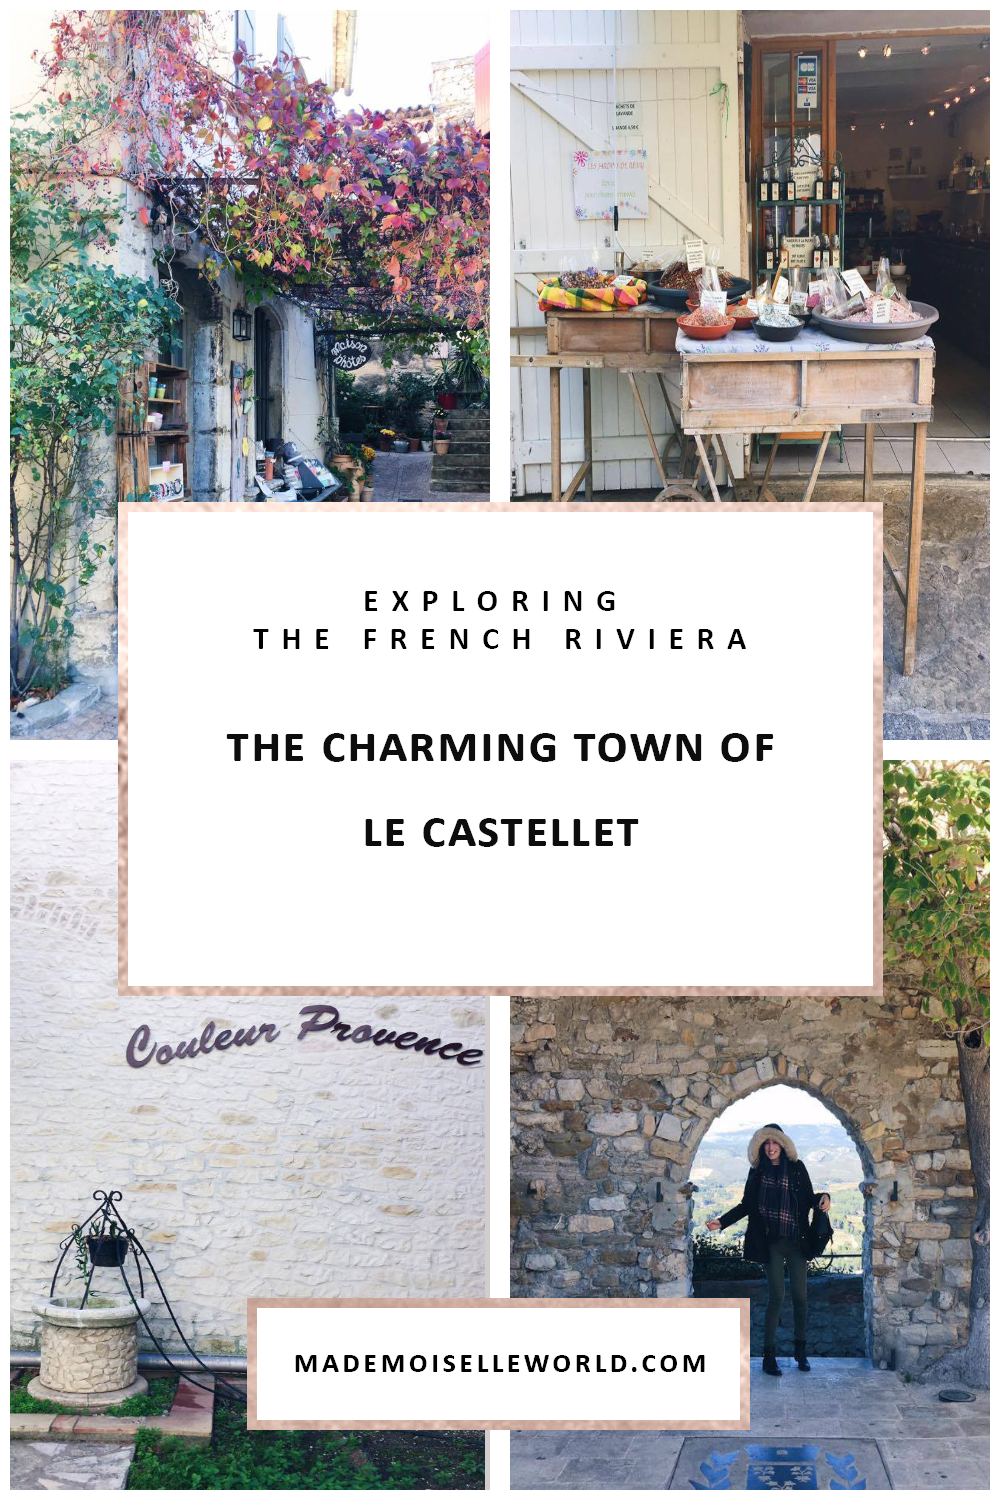 Exploring the French Riviera The Charming Town of Le